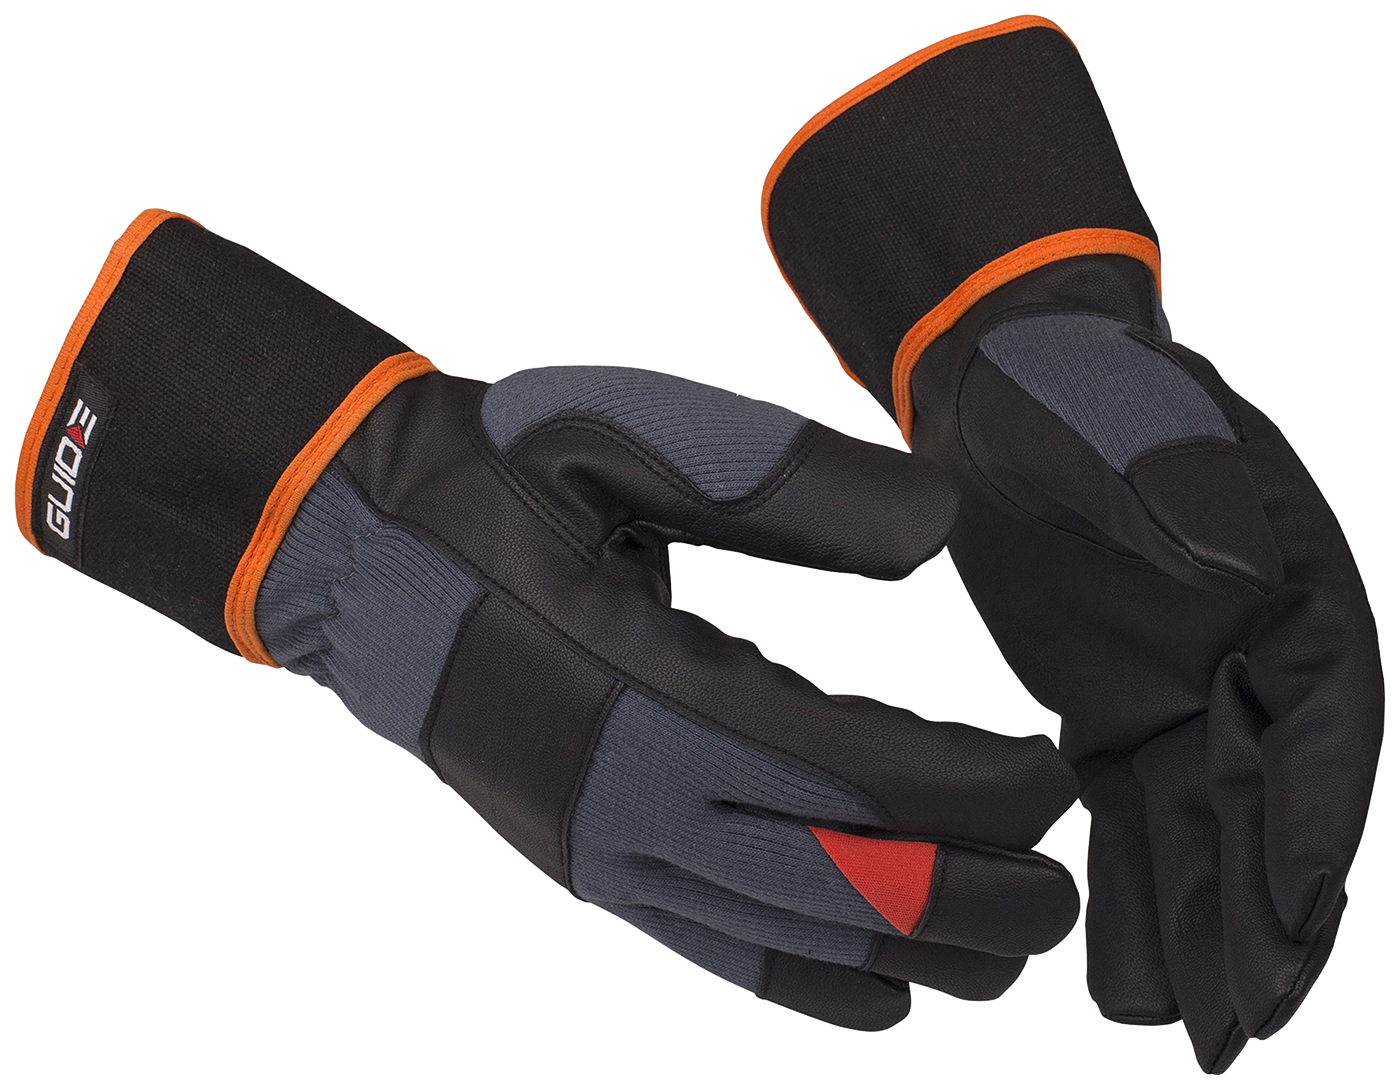 Warm Lined Glove GUIDE 769W